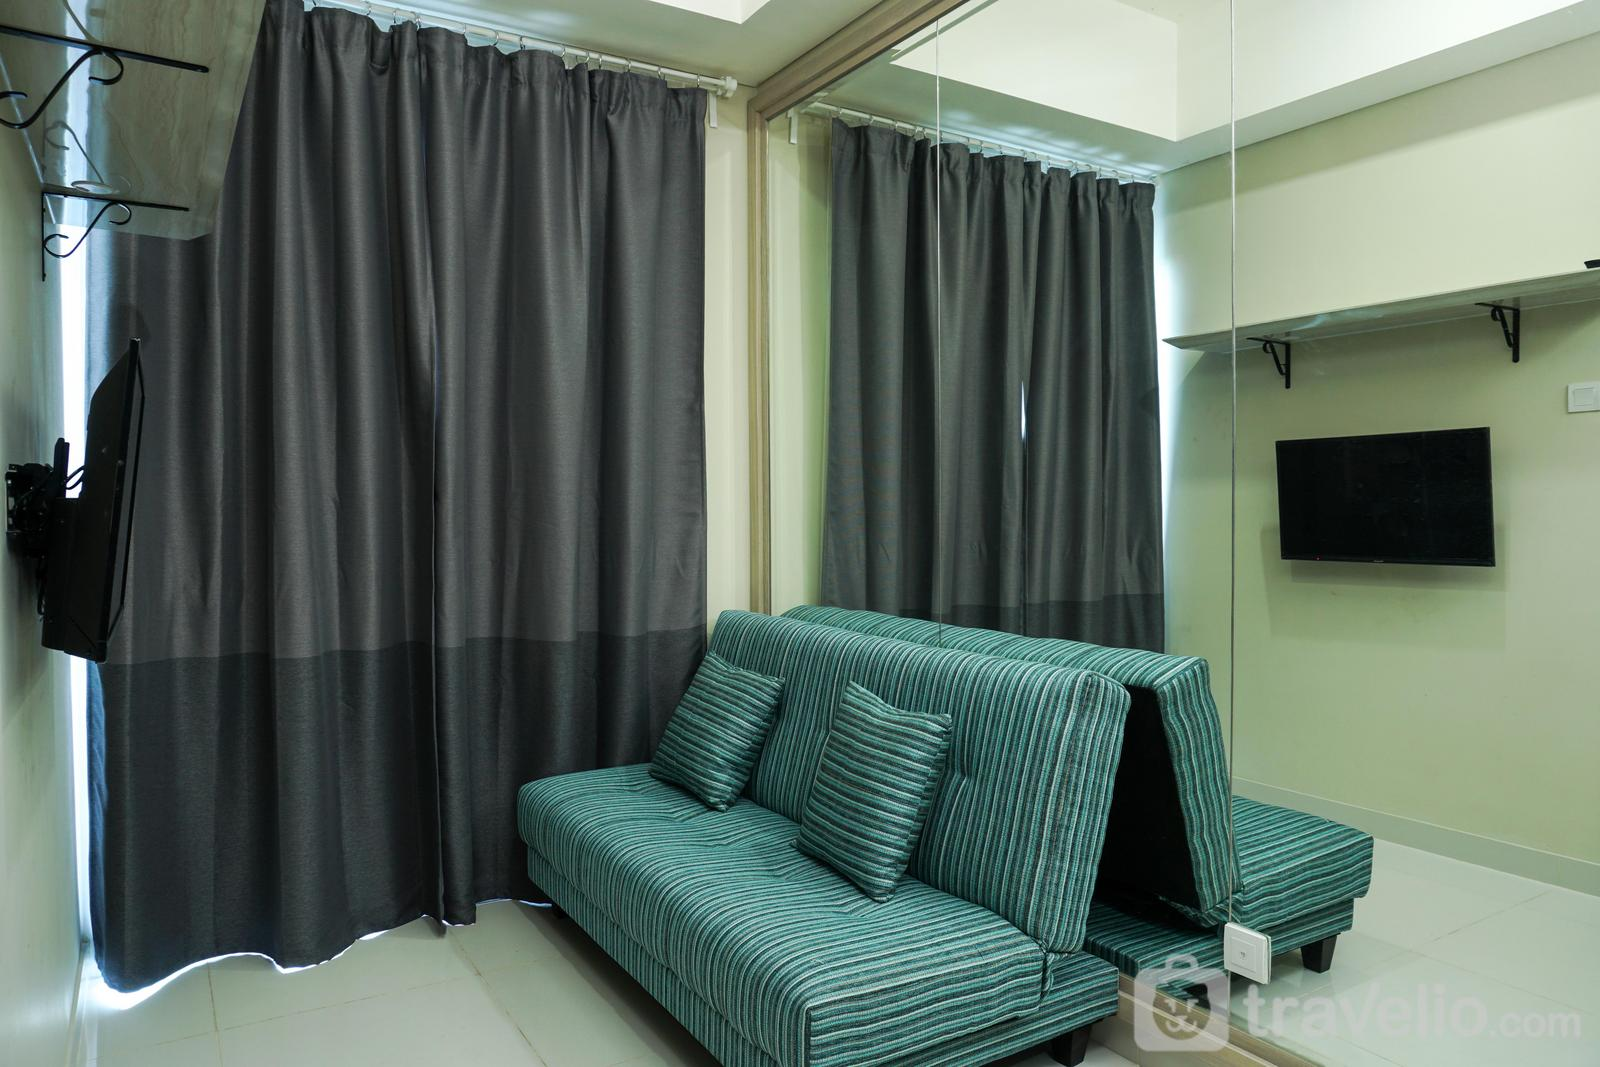 Apartemen Puri Mansion - Best 1BR with Sofa Bed Puri Mansion Apartment By Travelio